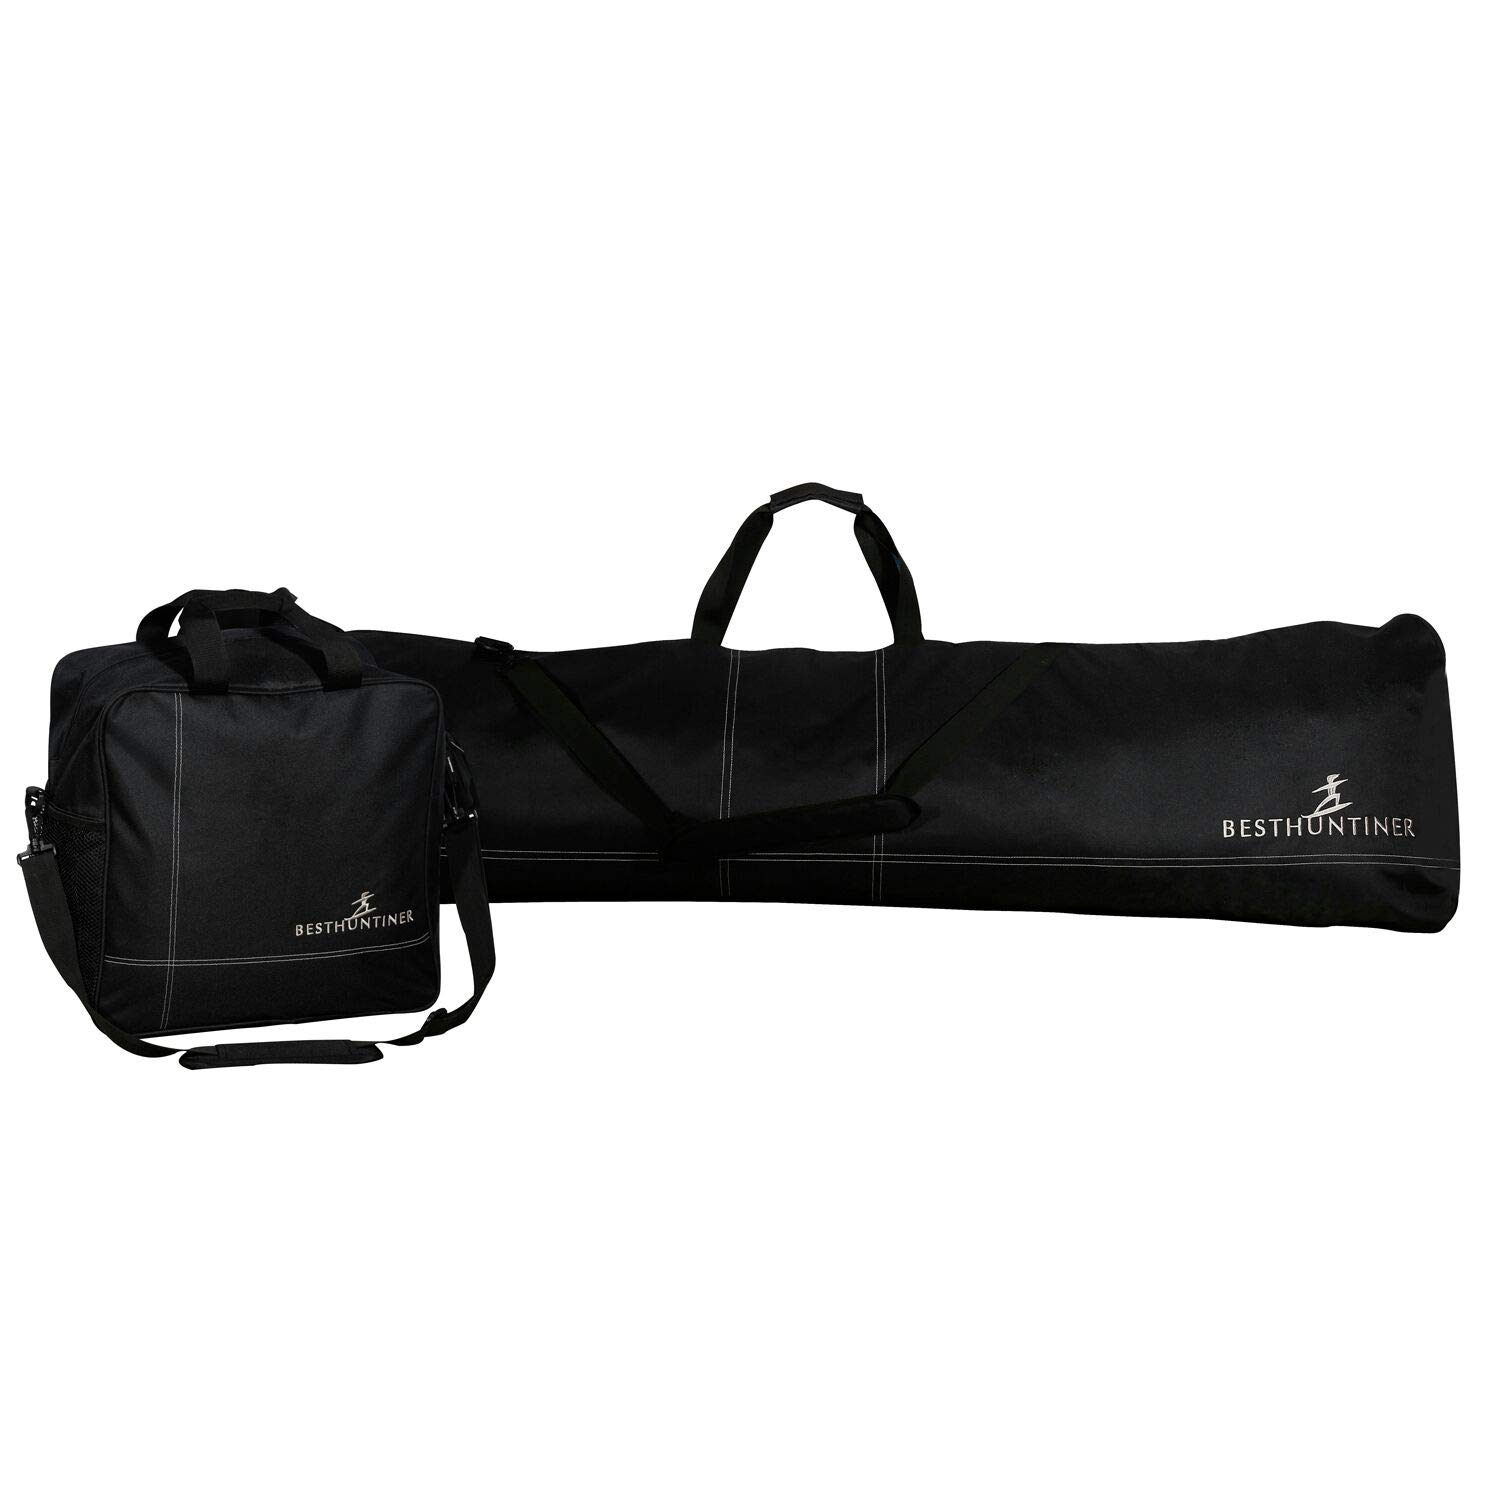 BESTHUNTIER Simple Black Snowboard Bag And Boot Bag No Padded Fitting Snowbaord Up To 167CM And Boot Size Up To 13.